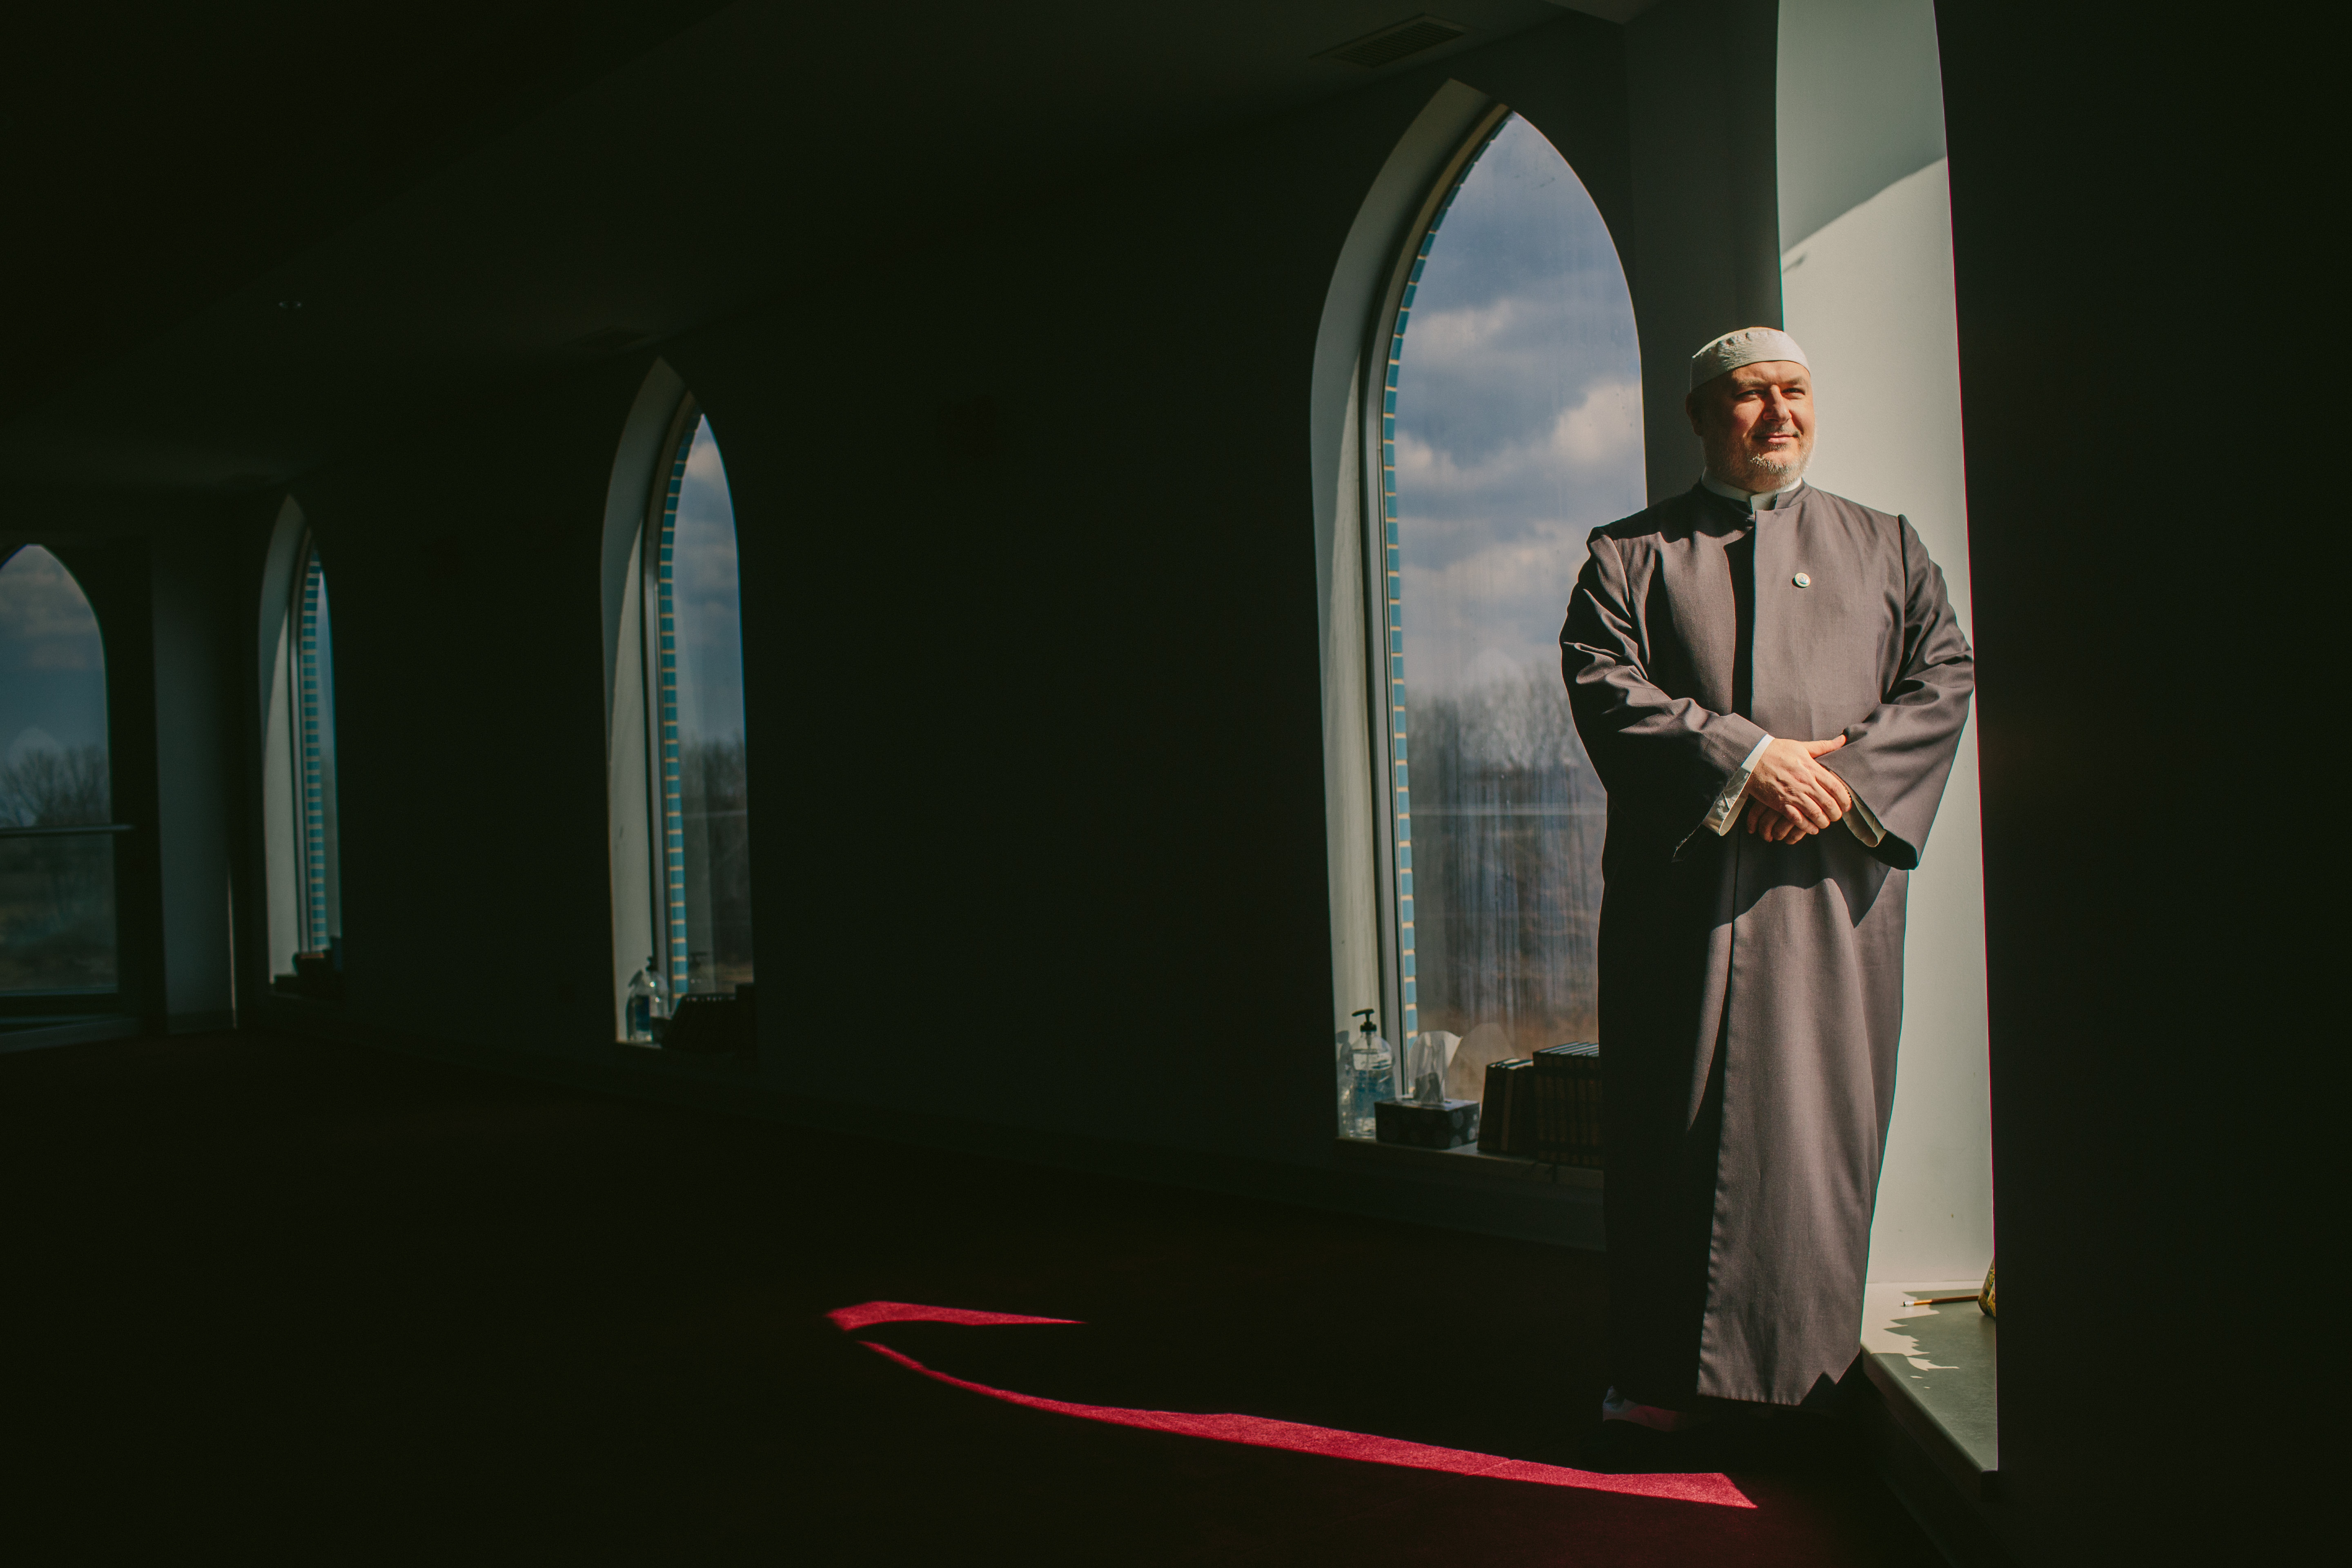 Imam Kifah Mustapha poses for a portrait in the mezzanine of The Pray Center of Orland Park. (Alyssa Schukar/For WBEZ)